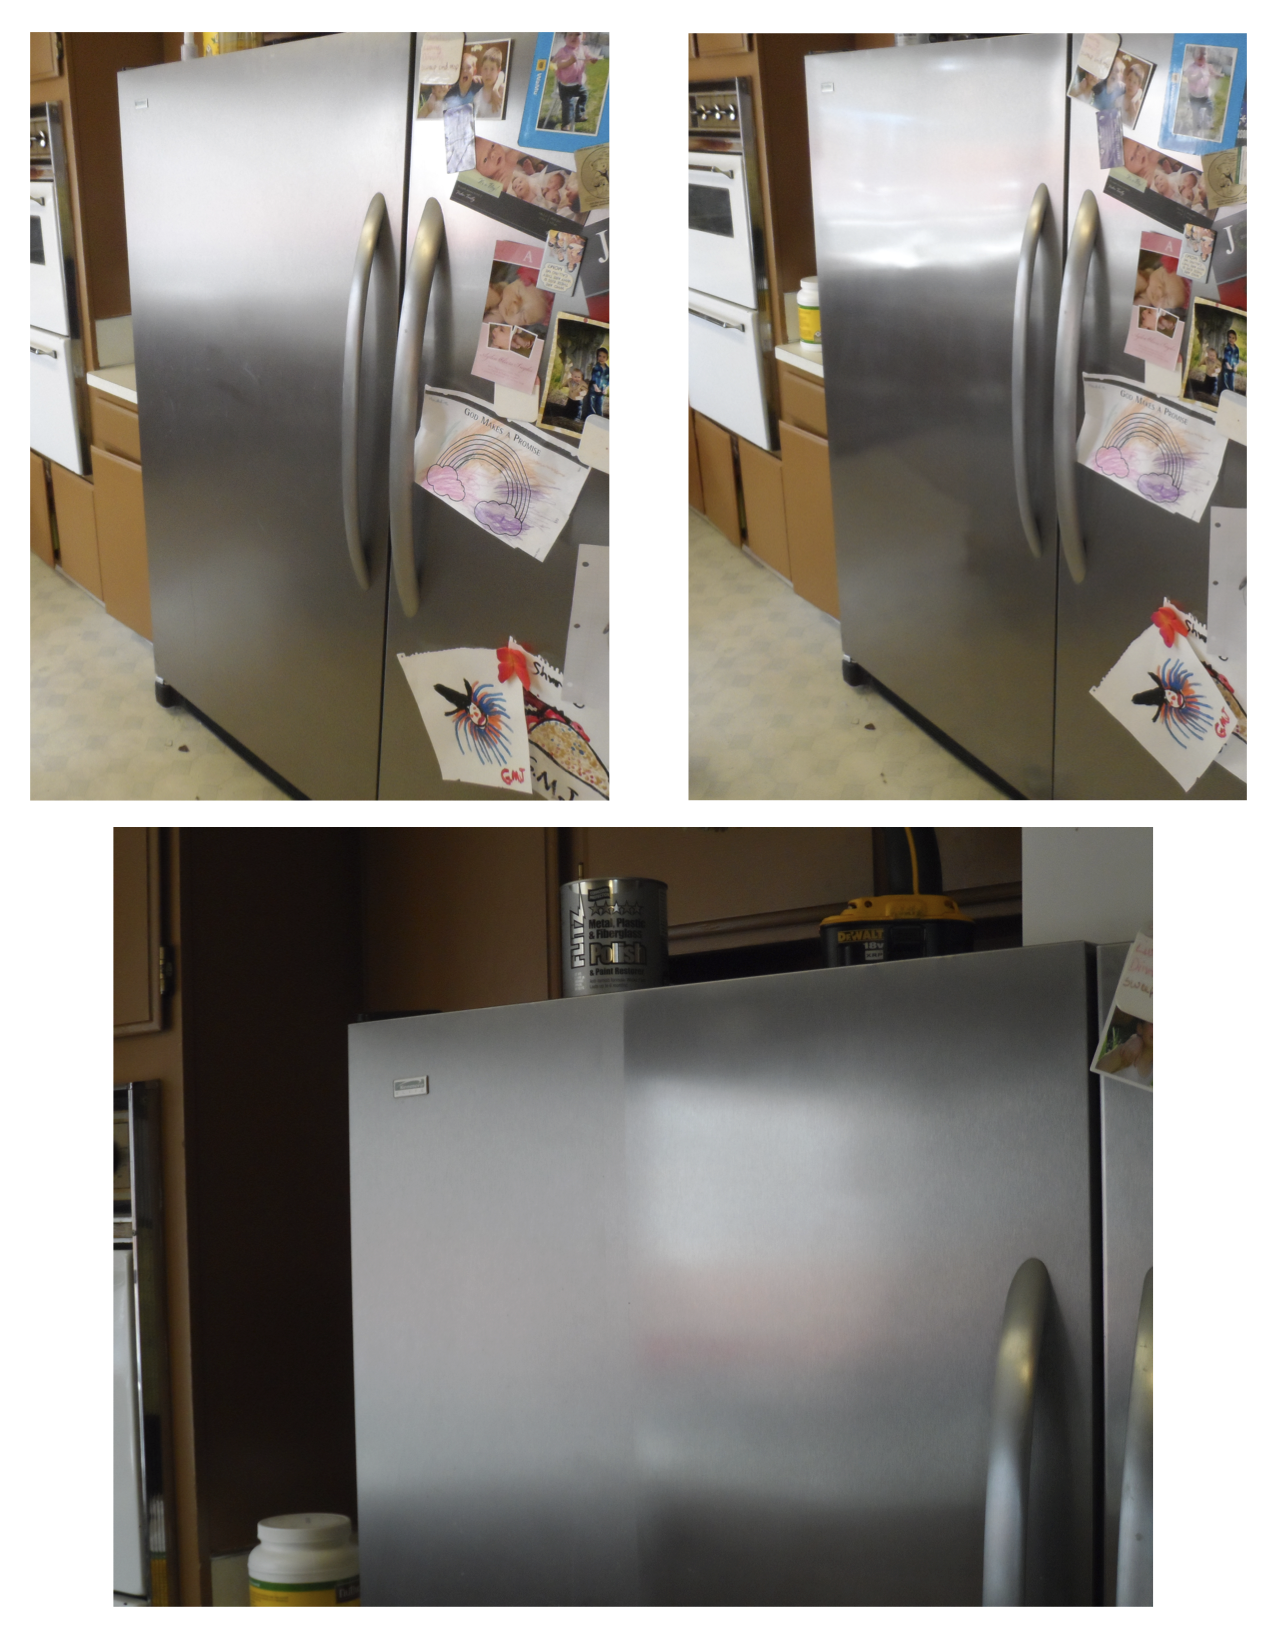 Rescuing Your Stainless Steel Appliances With Images How To